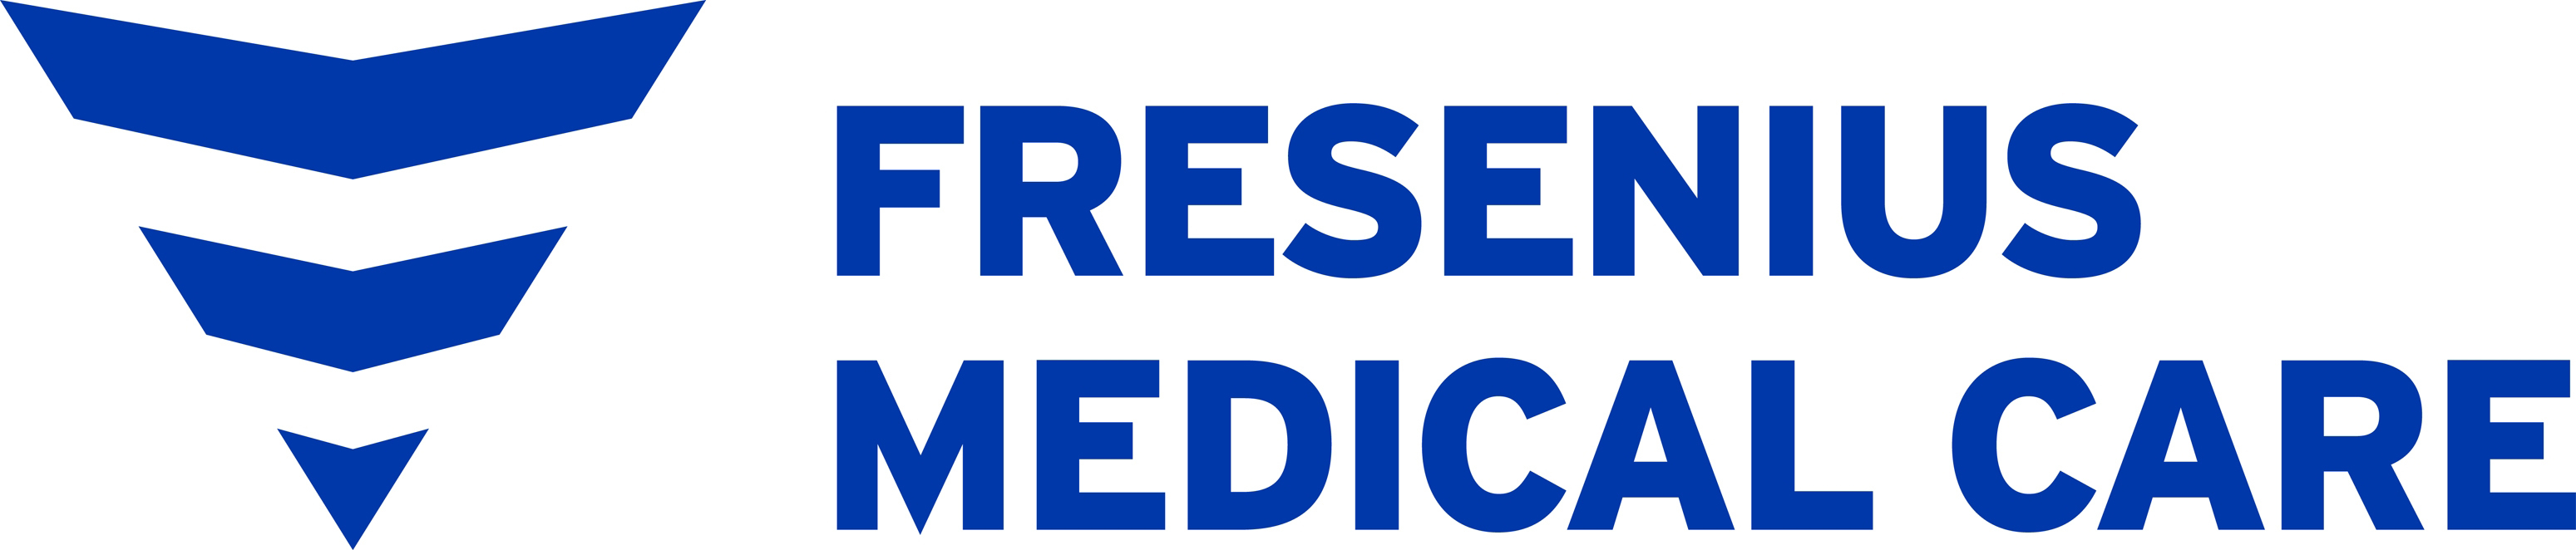 Fresenius Medical Care Logo V